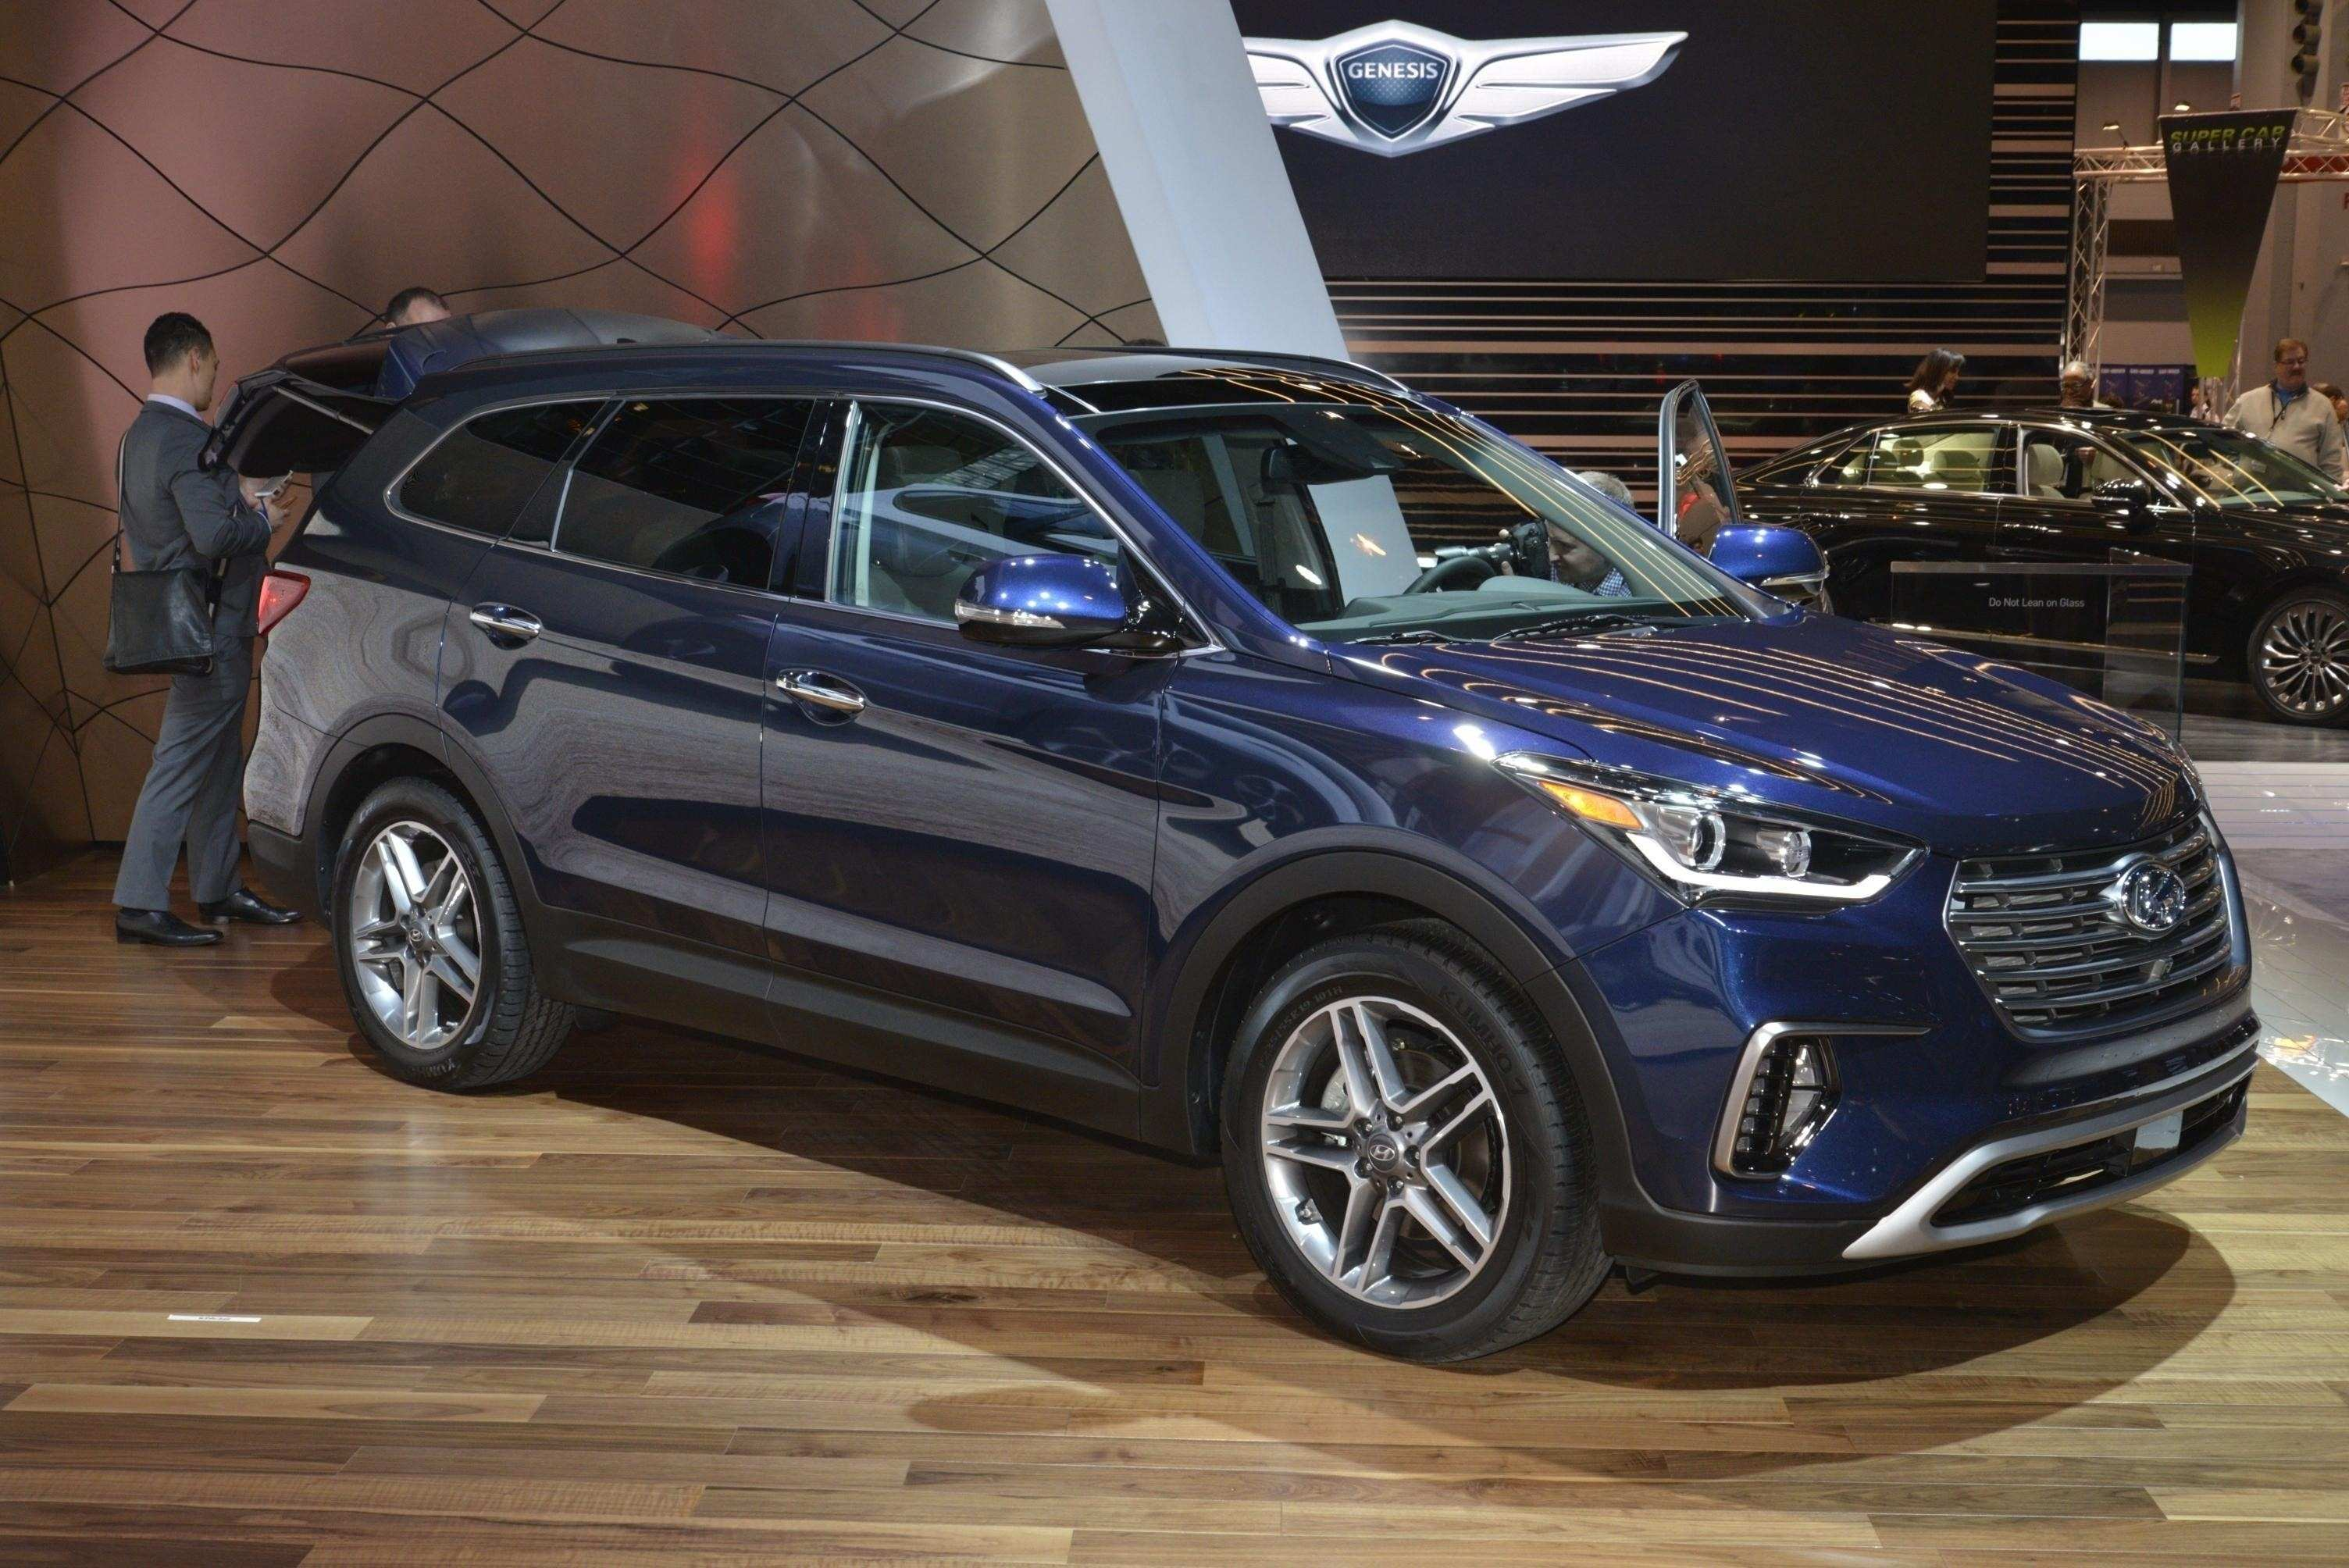 31 All New 2020 Hyundai Santa Fe Sport Rumors with 2020 Hyundai Santa Fe Sport